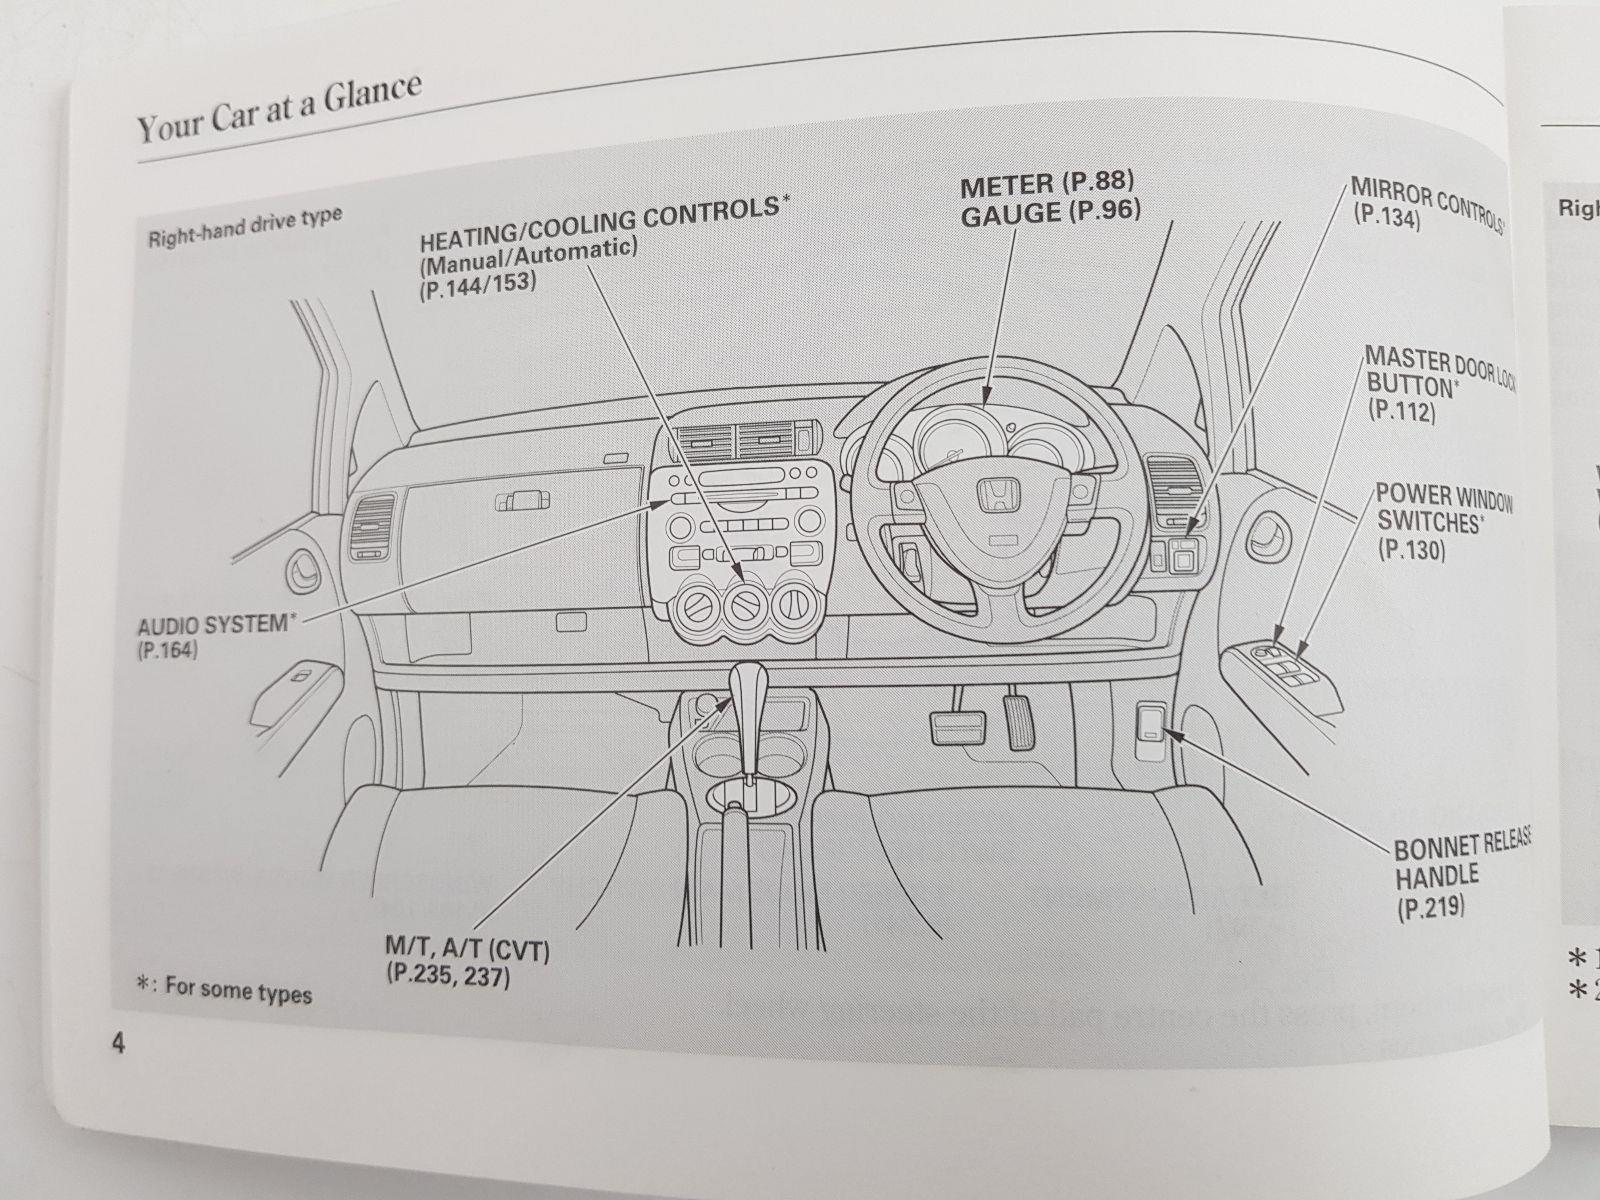 ... 2003 MK2 Honda Jazz OWNERS MANUAL BOOK ...